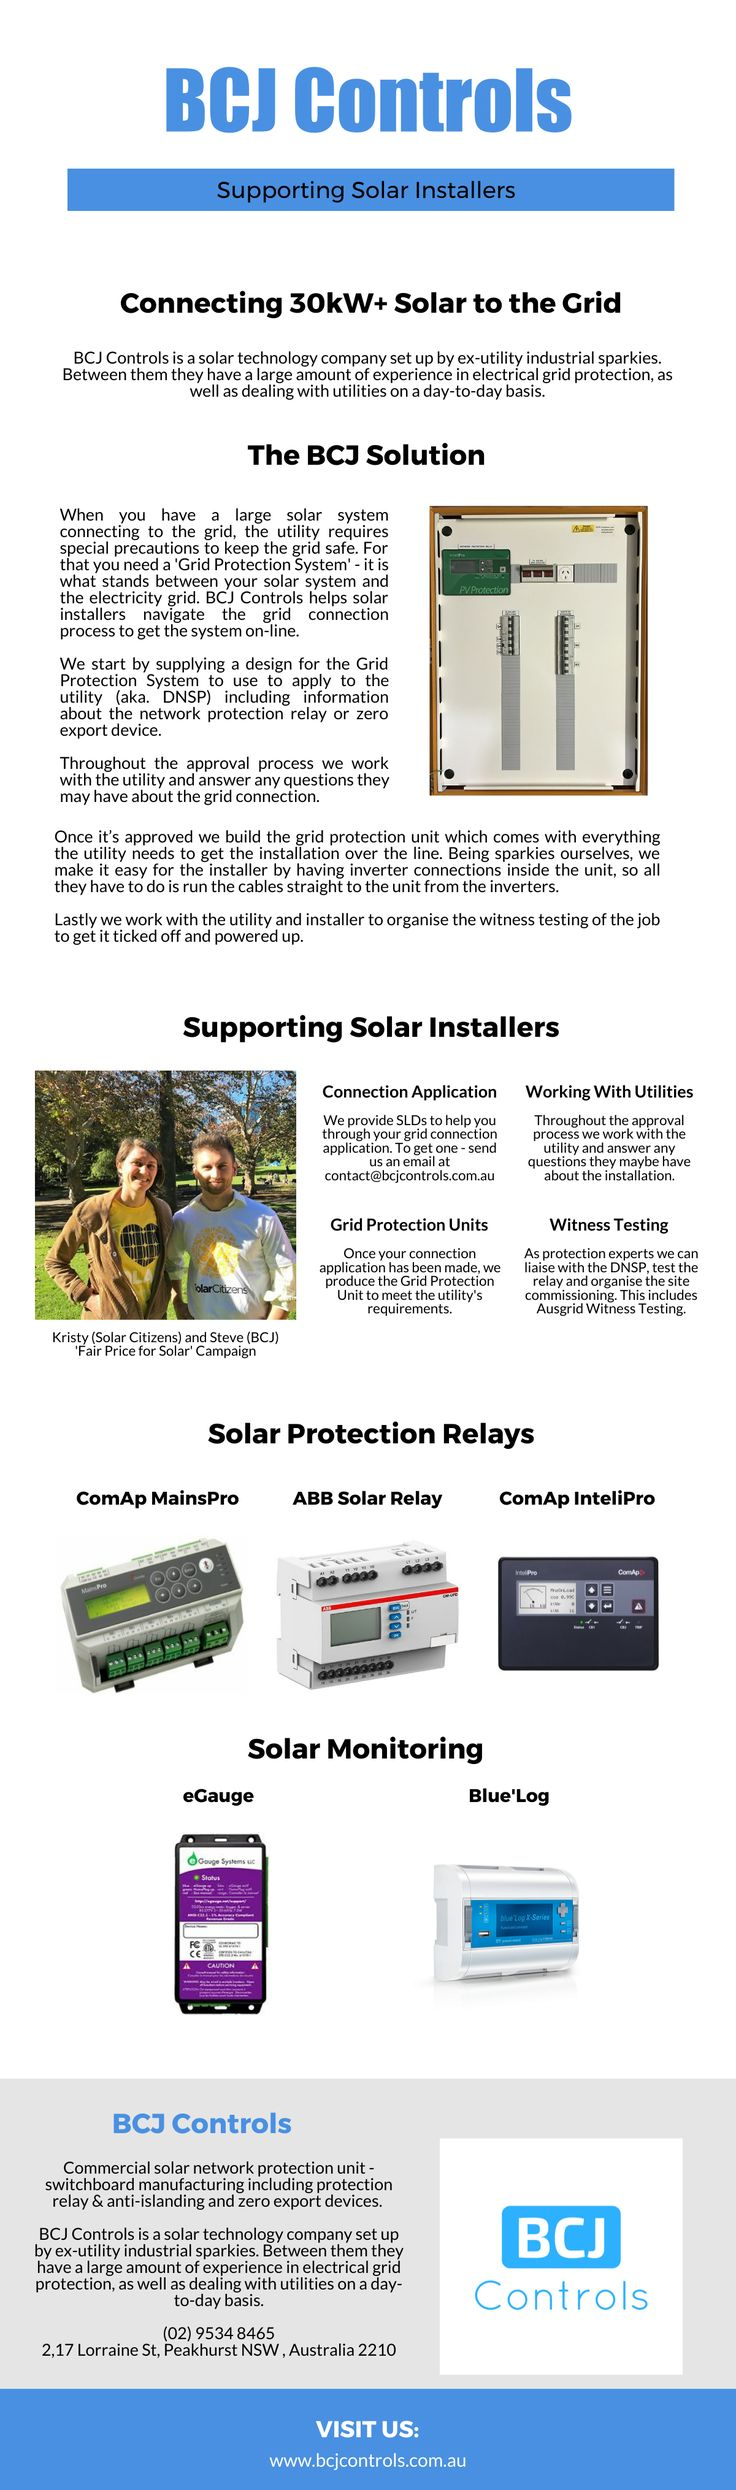 BCJ Controls is a solar technology company set up by ex-utility industrial sparkies. Between them they have a large amount of experience in electrical grid protection, as well as dealing with utilities on a day-to-day basis. Visit us for more info: @http://bcjcontrols.com.au/  #SolarProtectionRelay #ComapMainsPro #MainsPro #eGauge #eGaugeAustralia #BlueLog #BlueLogDataLogger #ComApIntelliPro #ComApInteliPro